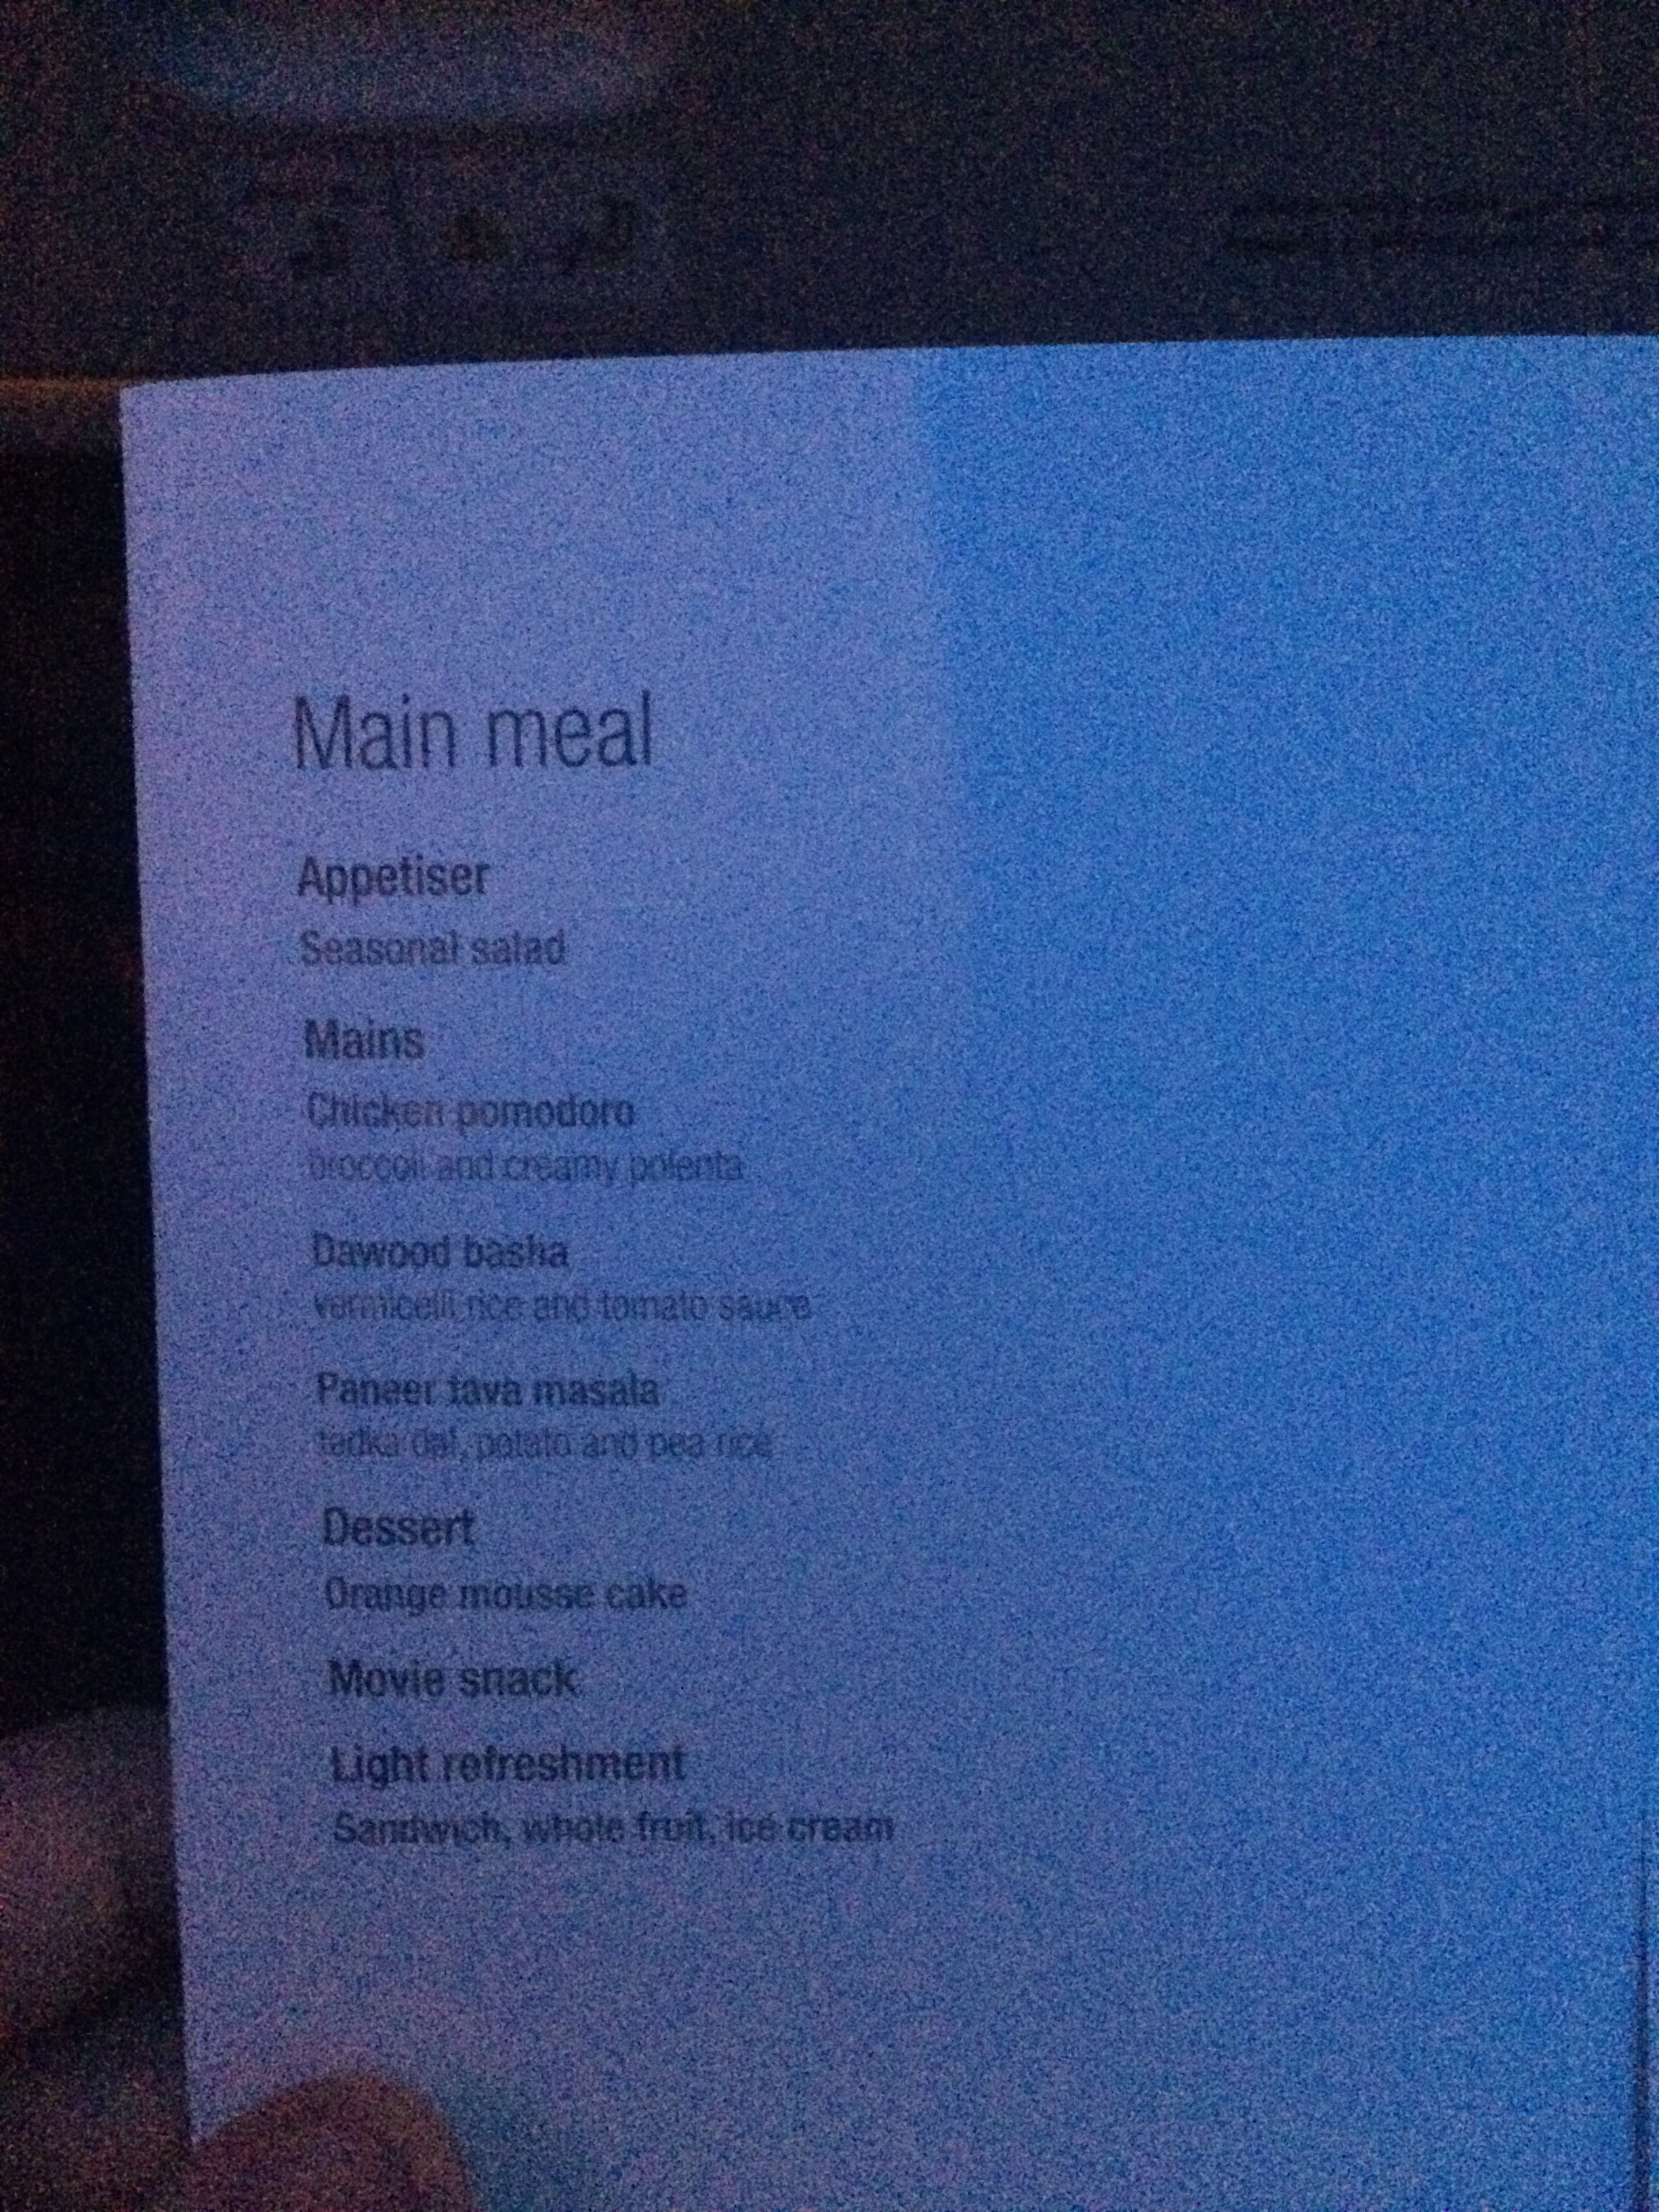 qatar airways menu.JPG